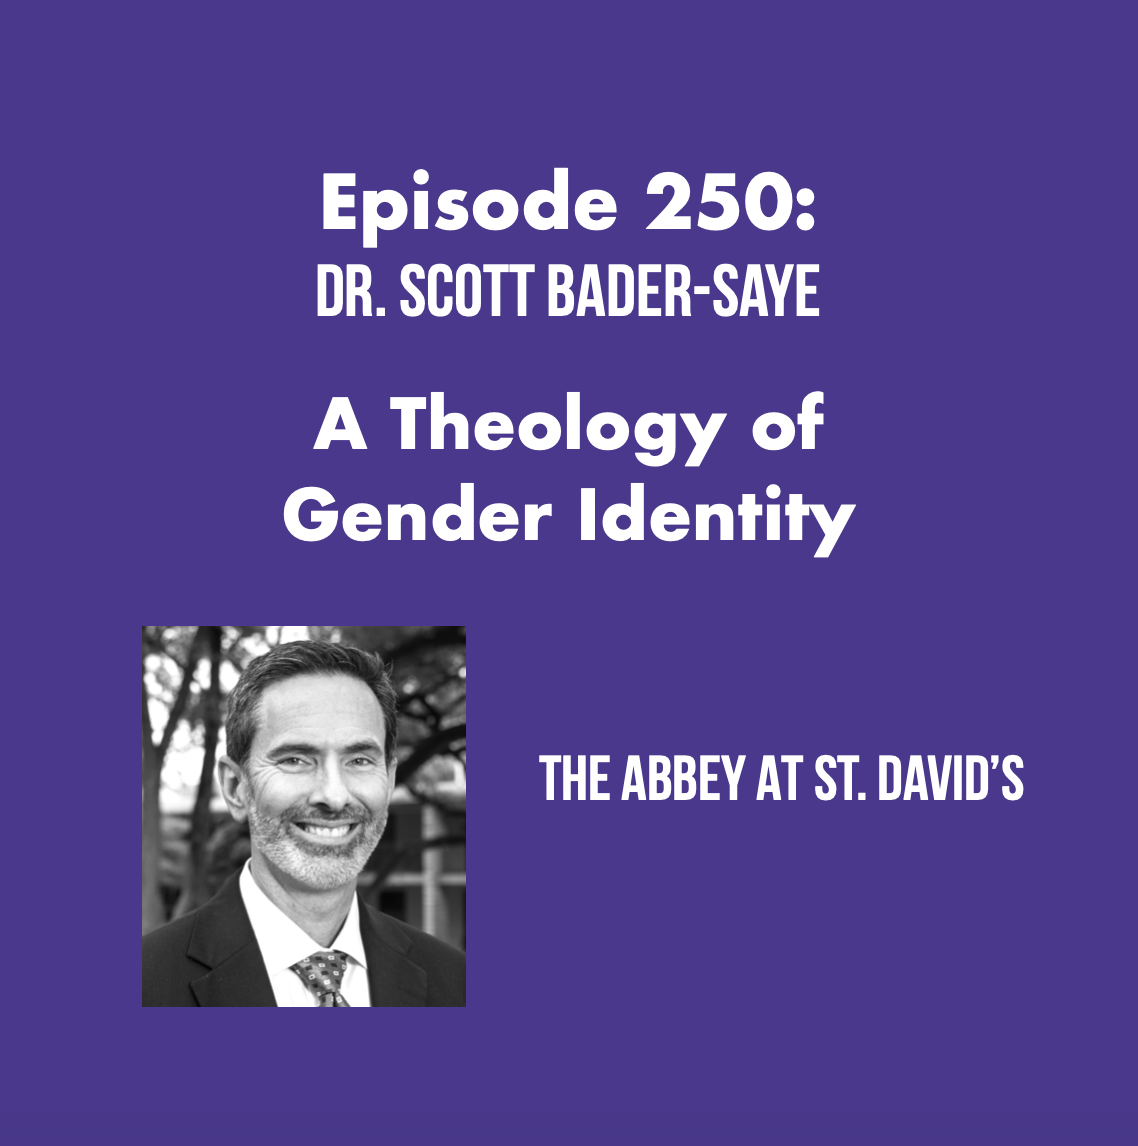 Episode 250: A Theology of Gender Identity with Dr. Scott Bader-Saye